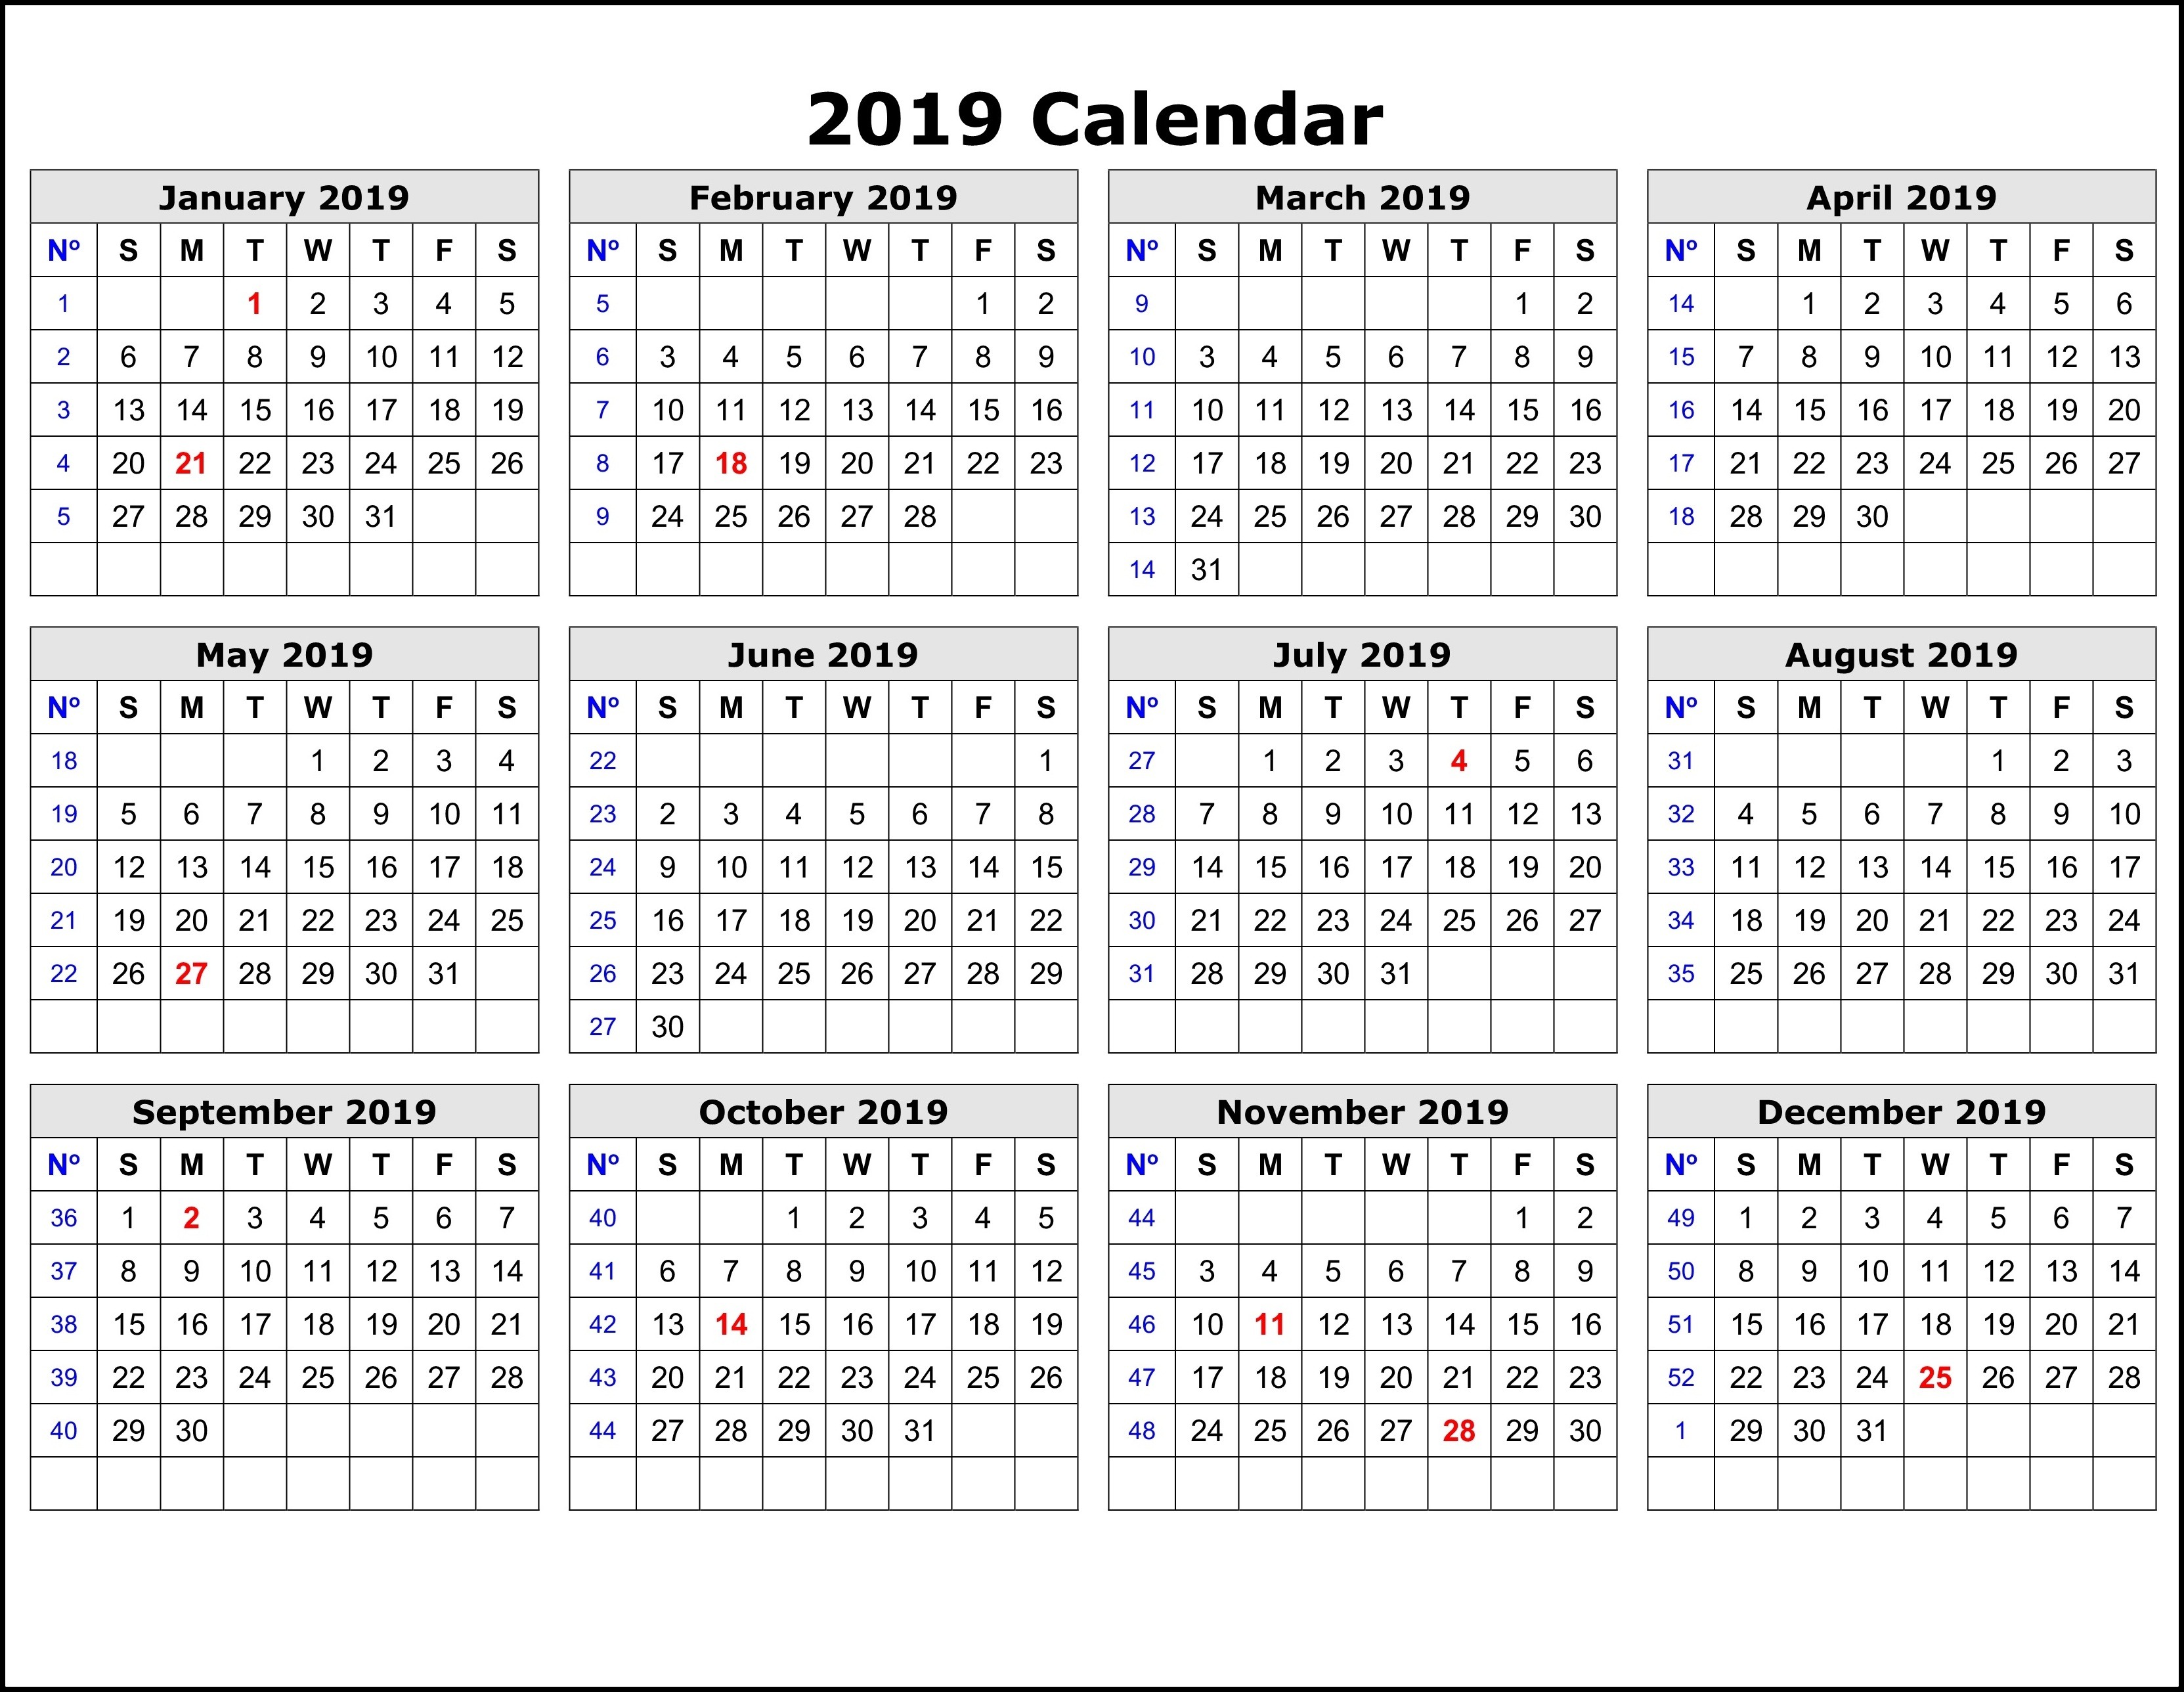 2019 Calendar Template By Week